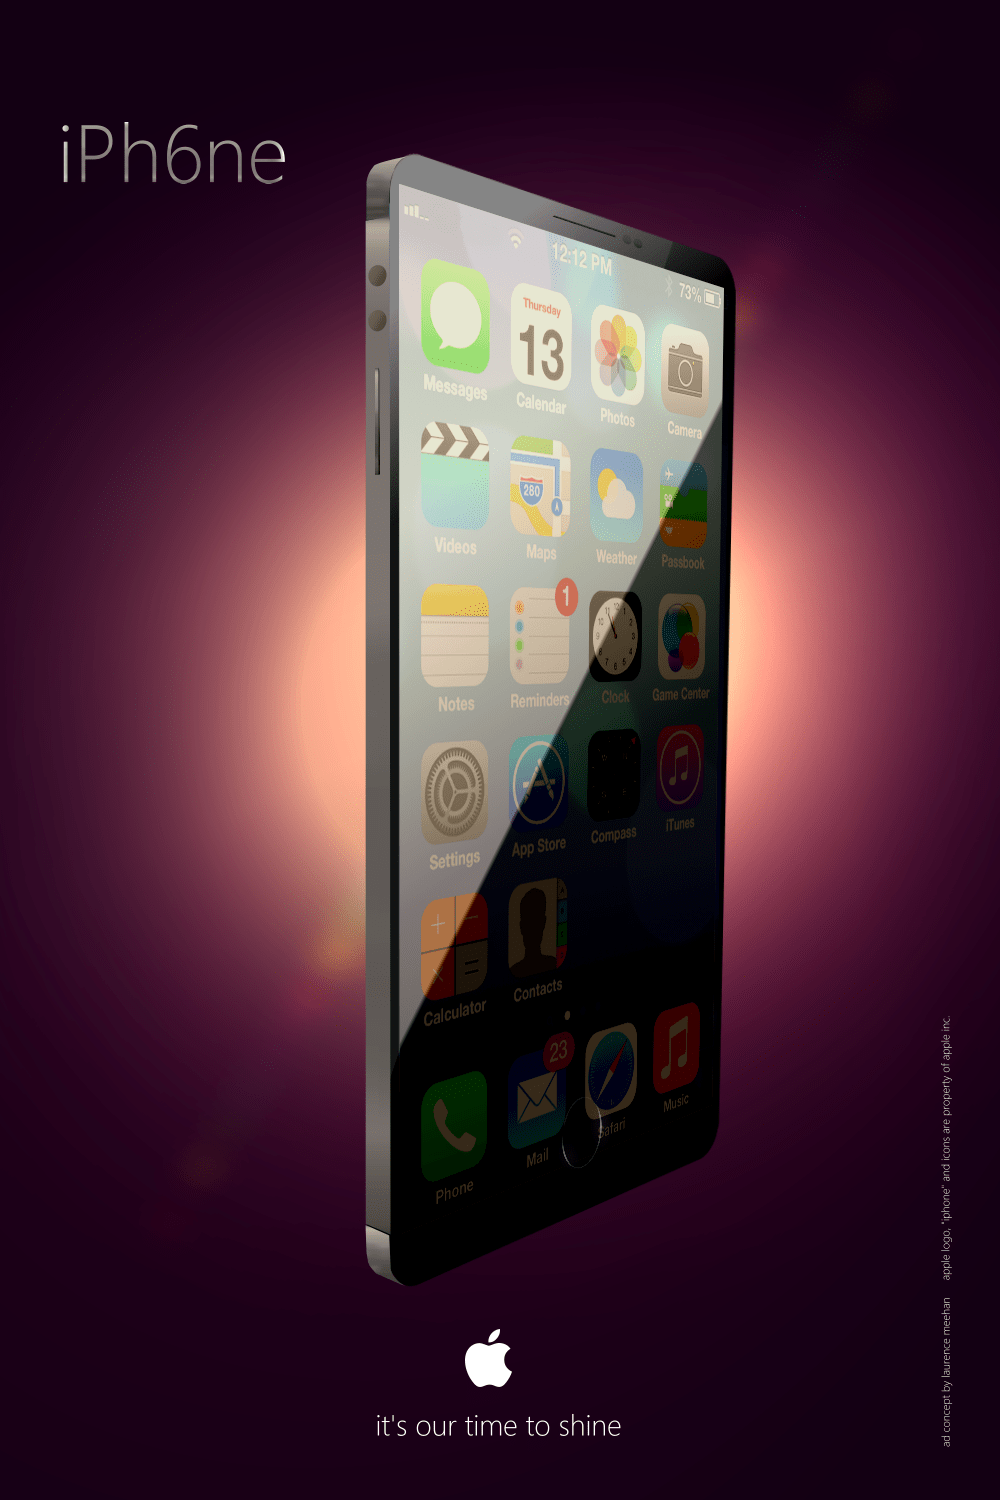 iPhone 6 Concept Hints at What May Come